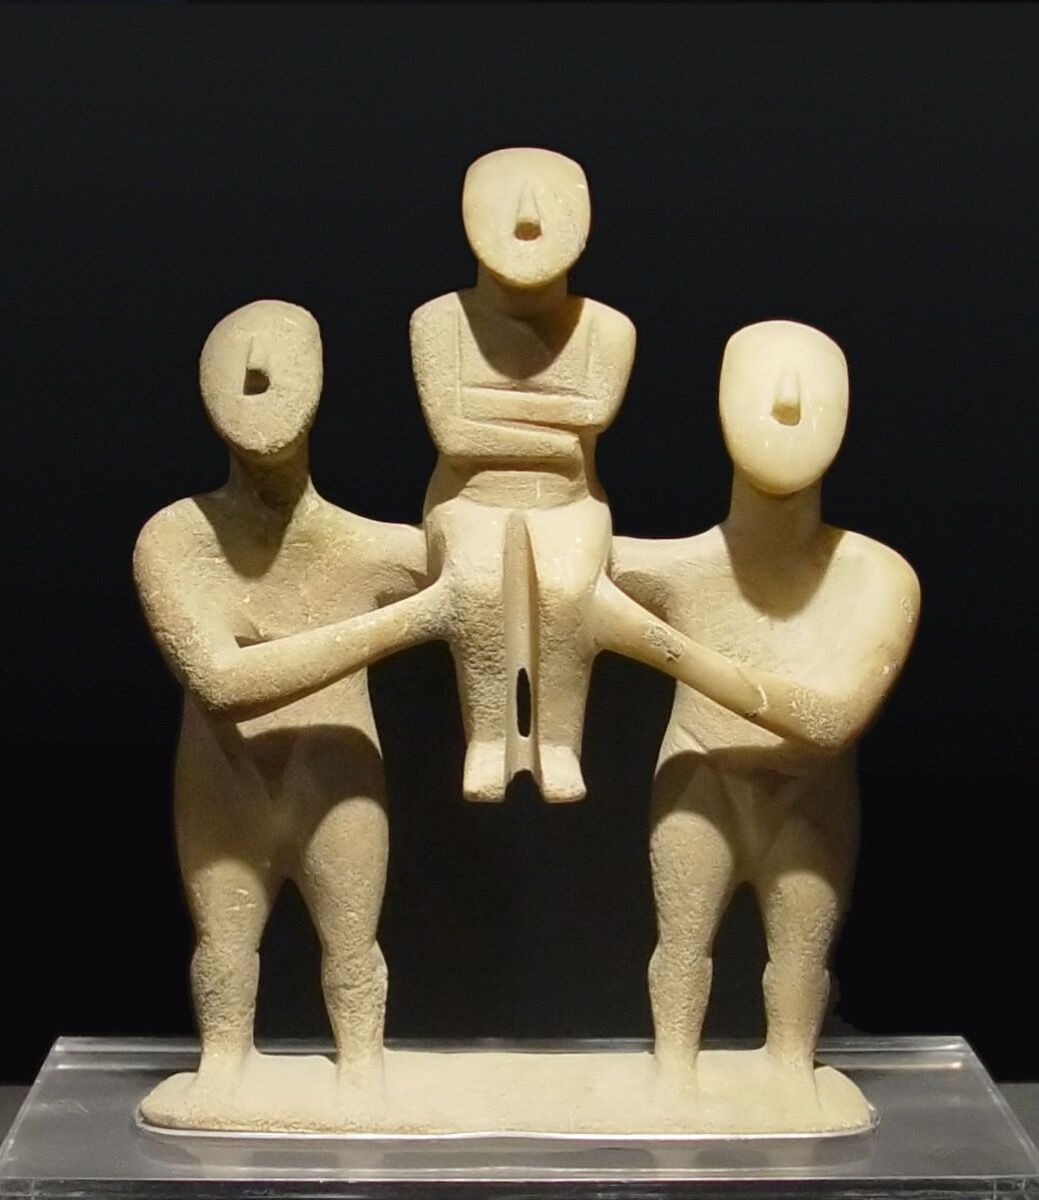 Group of three figurines, early Spedos type, Keros-Syros culture, Early Cycladic II. Image via Wikimedia Commons.